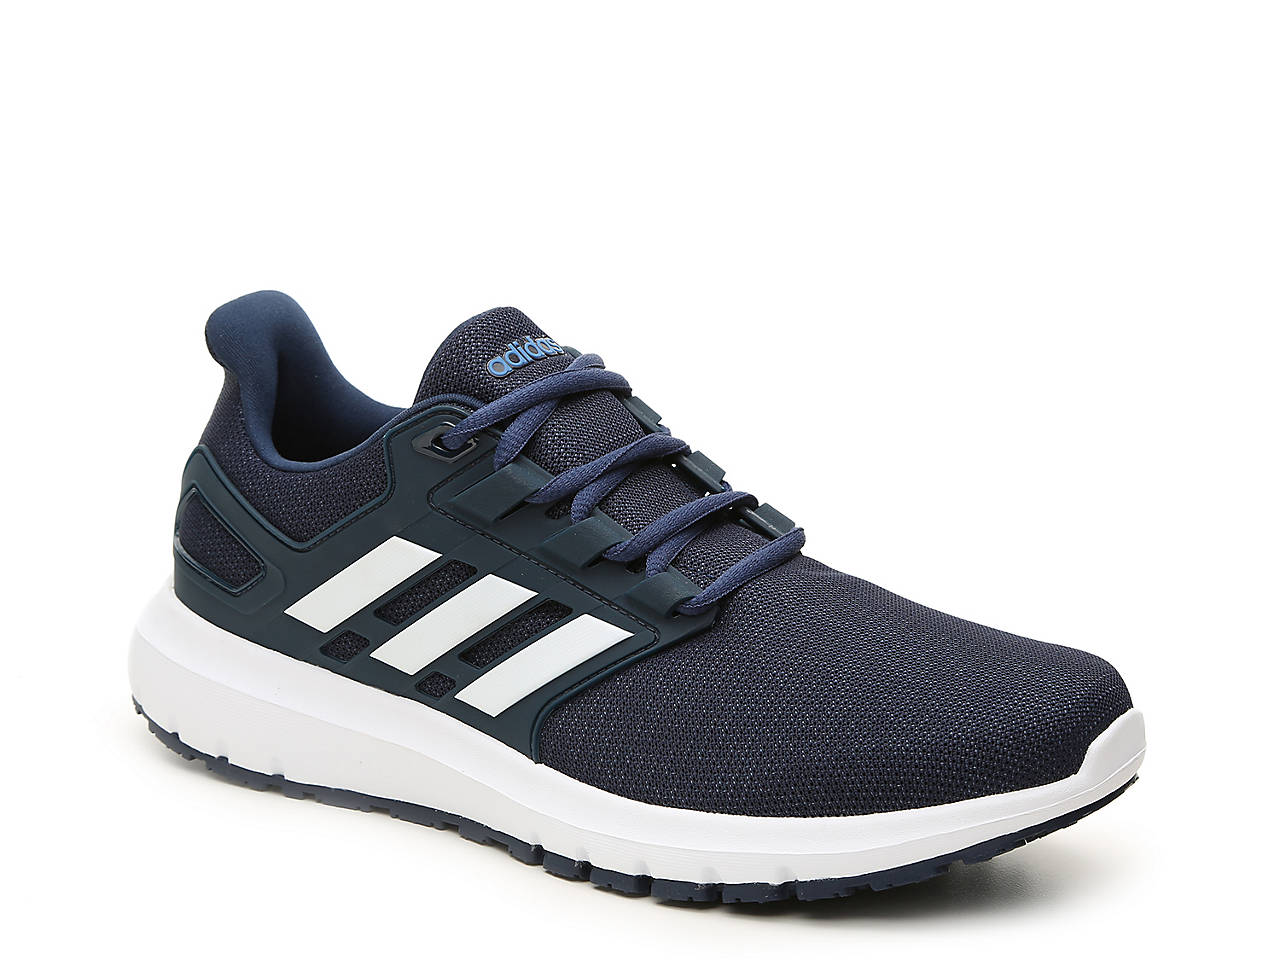 86e2a65d9 adidas Energy Cloud 2 Running Shoe - Men s Men s Shoes